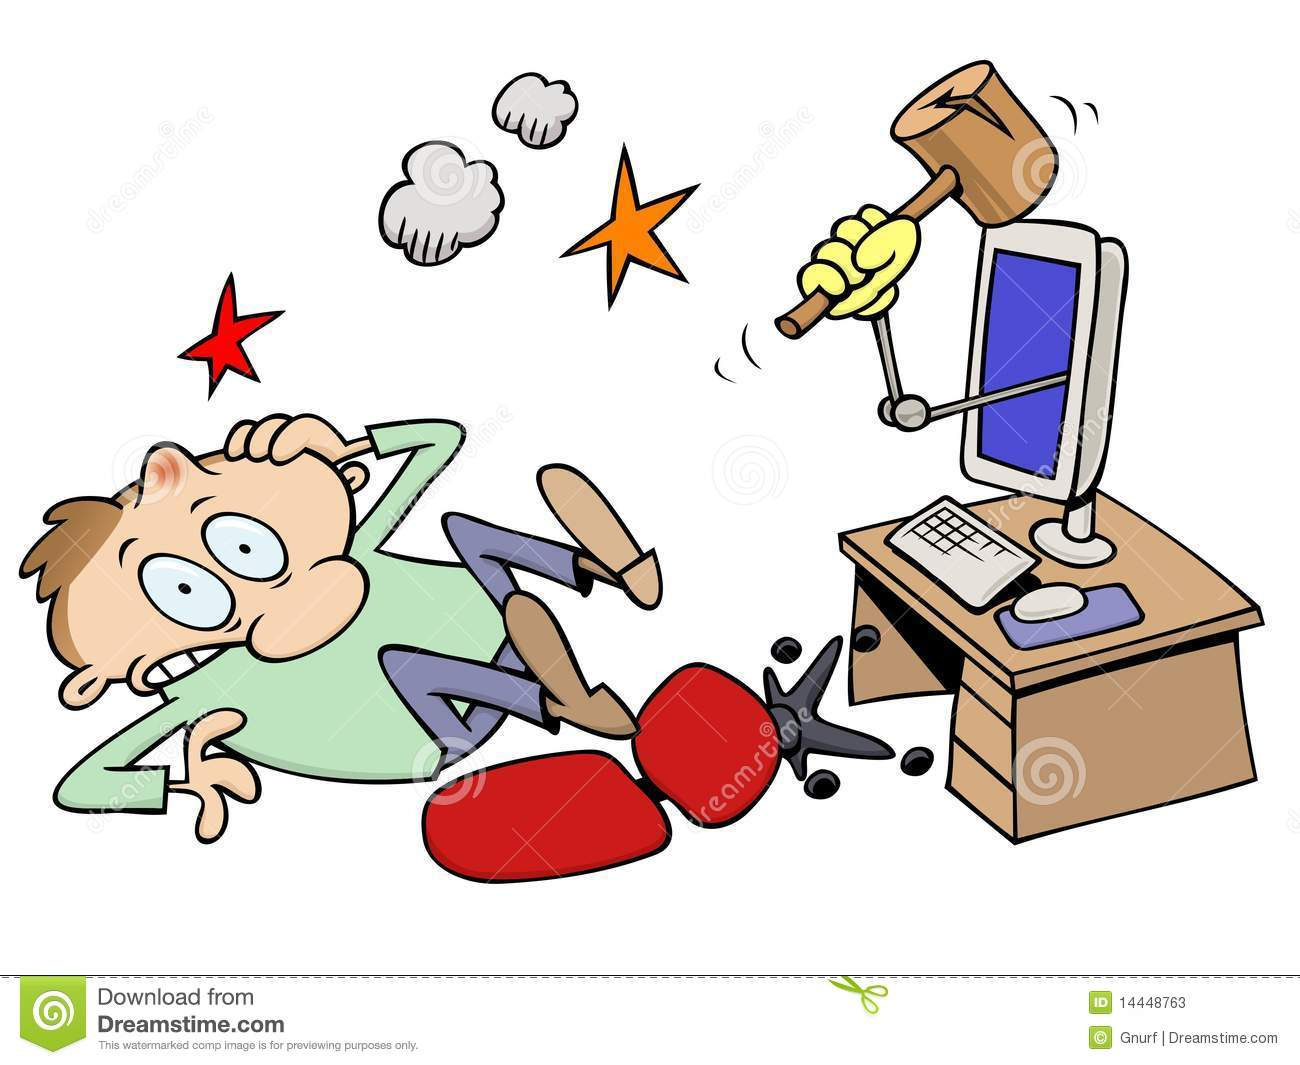 Knocked out computer guy stock vector. Illustration of computer.